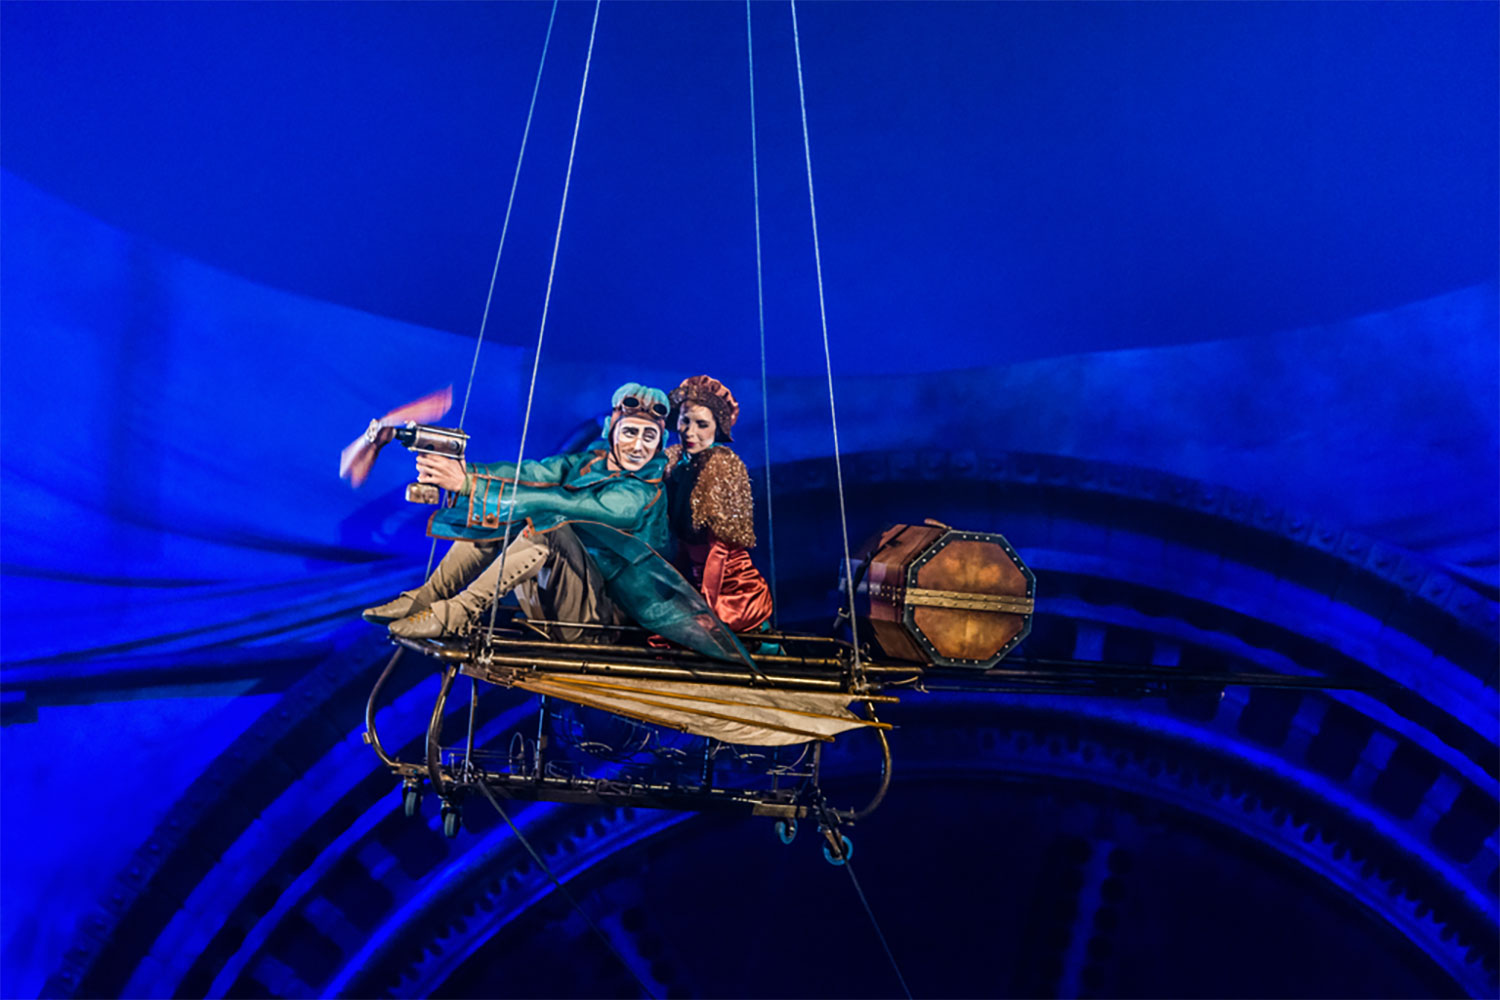 CIRQUE DU SOLEIL is coming to Singapore withK KURIOS - Cabinet of Curiosities!